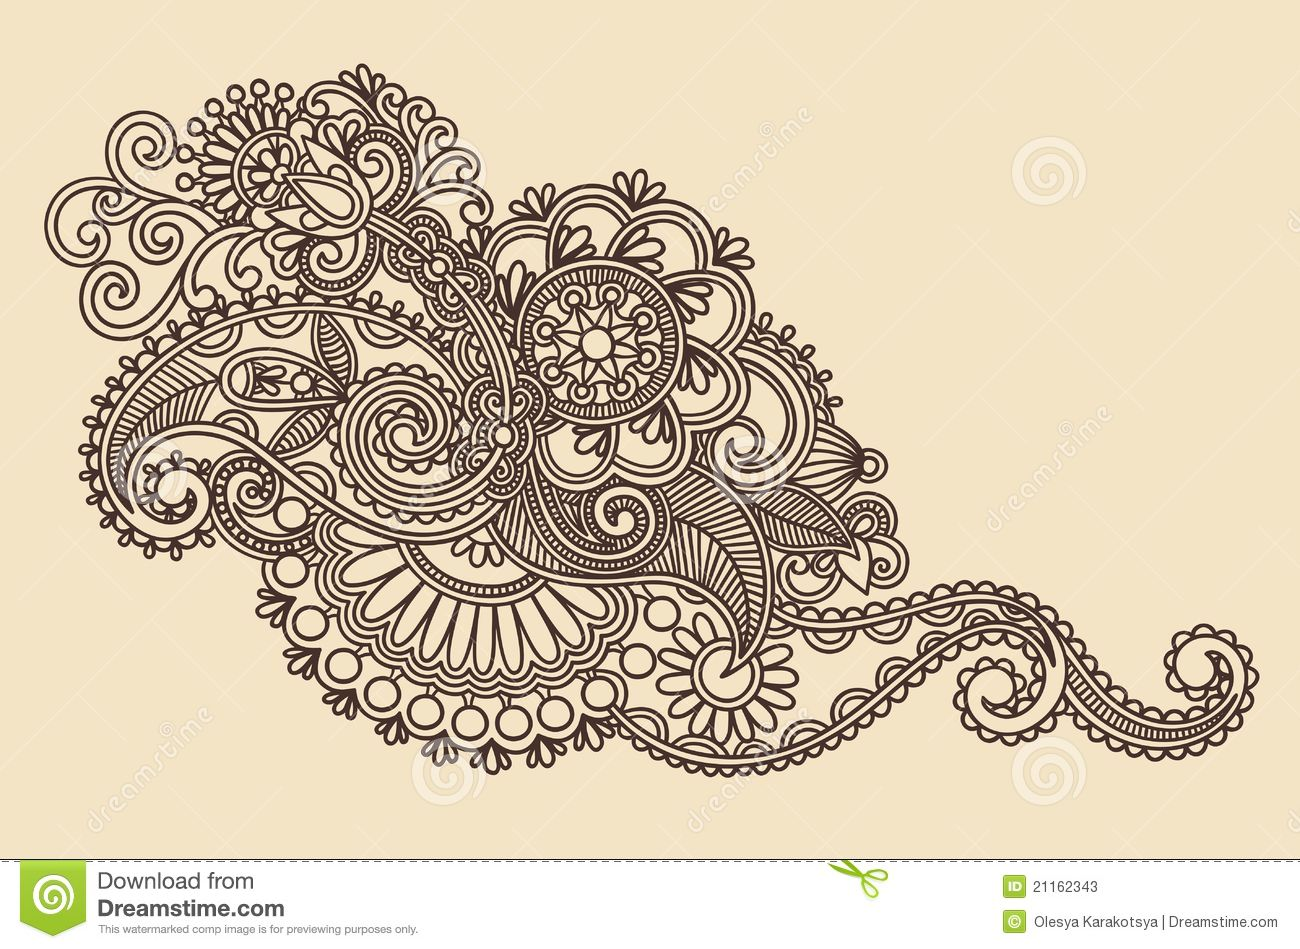 Henna Design Element Stock Vector Illustration Of Ornamental 21162343